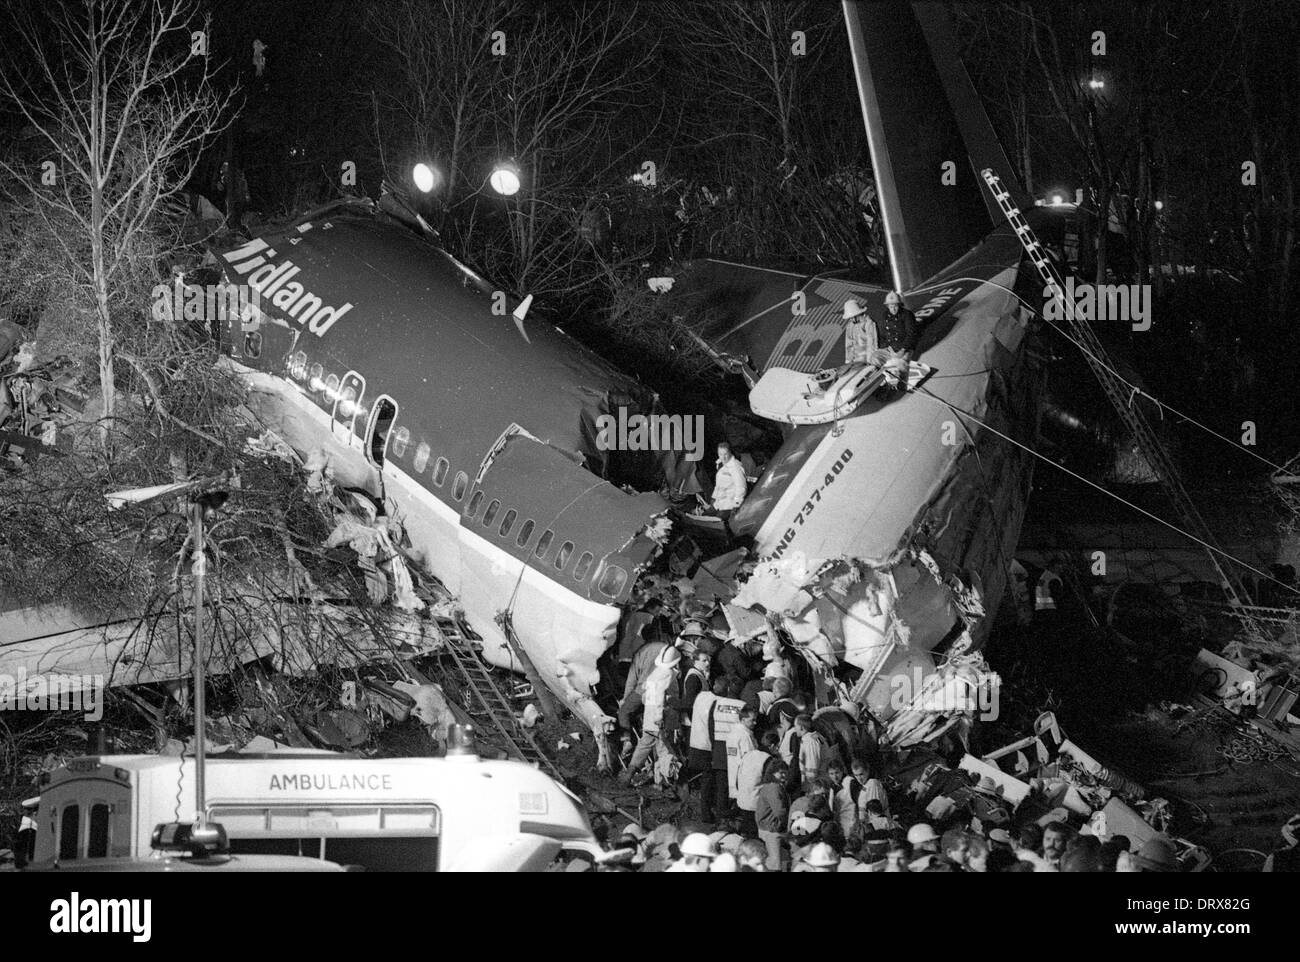 Kegworth Air Disaster 1989 emergency rescue working on the wreckage at night 8th January 1989 - Stock Image